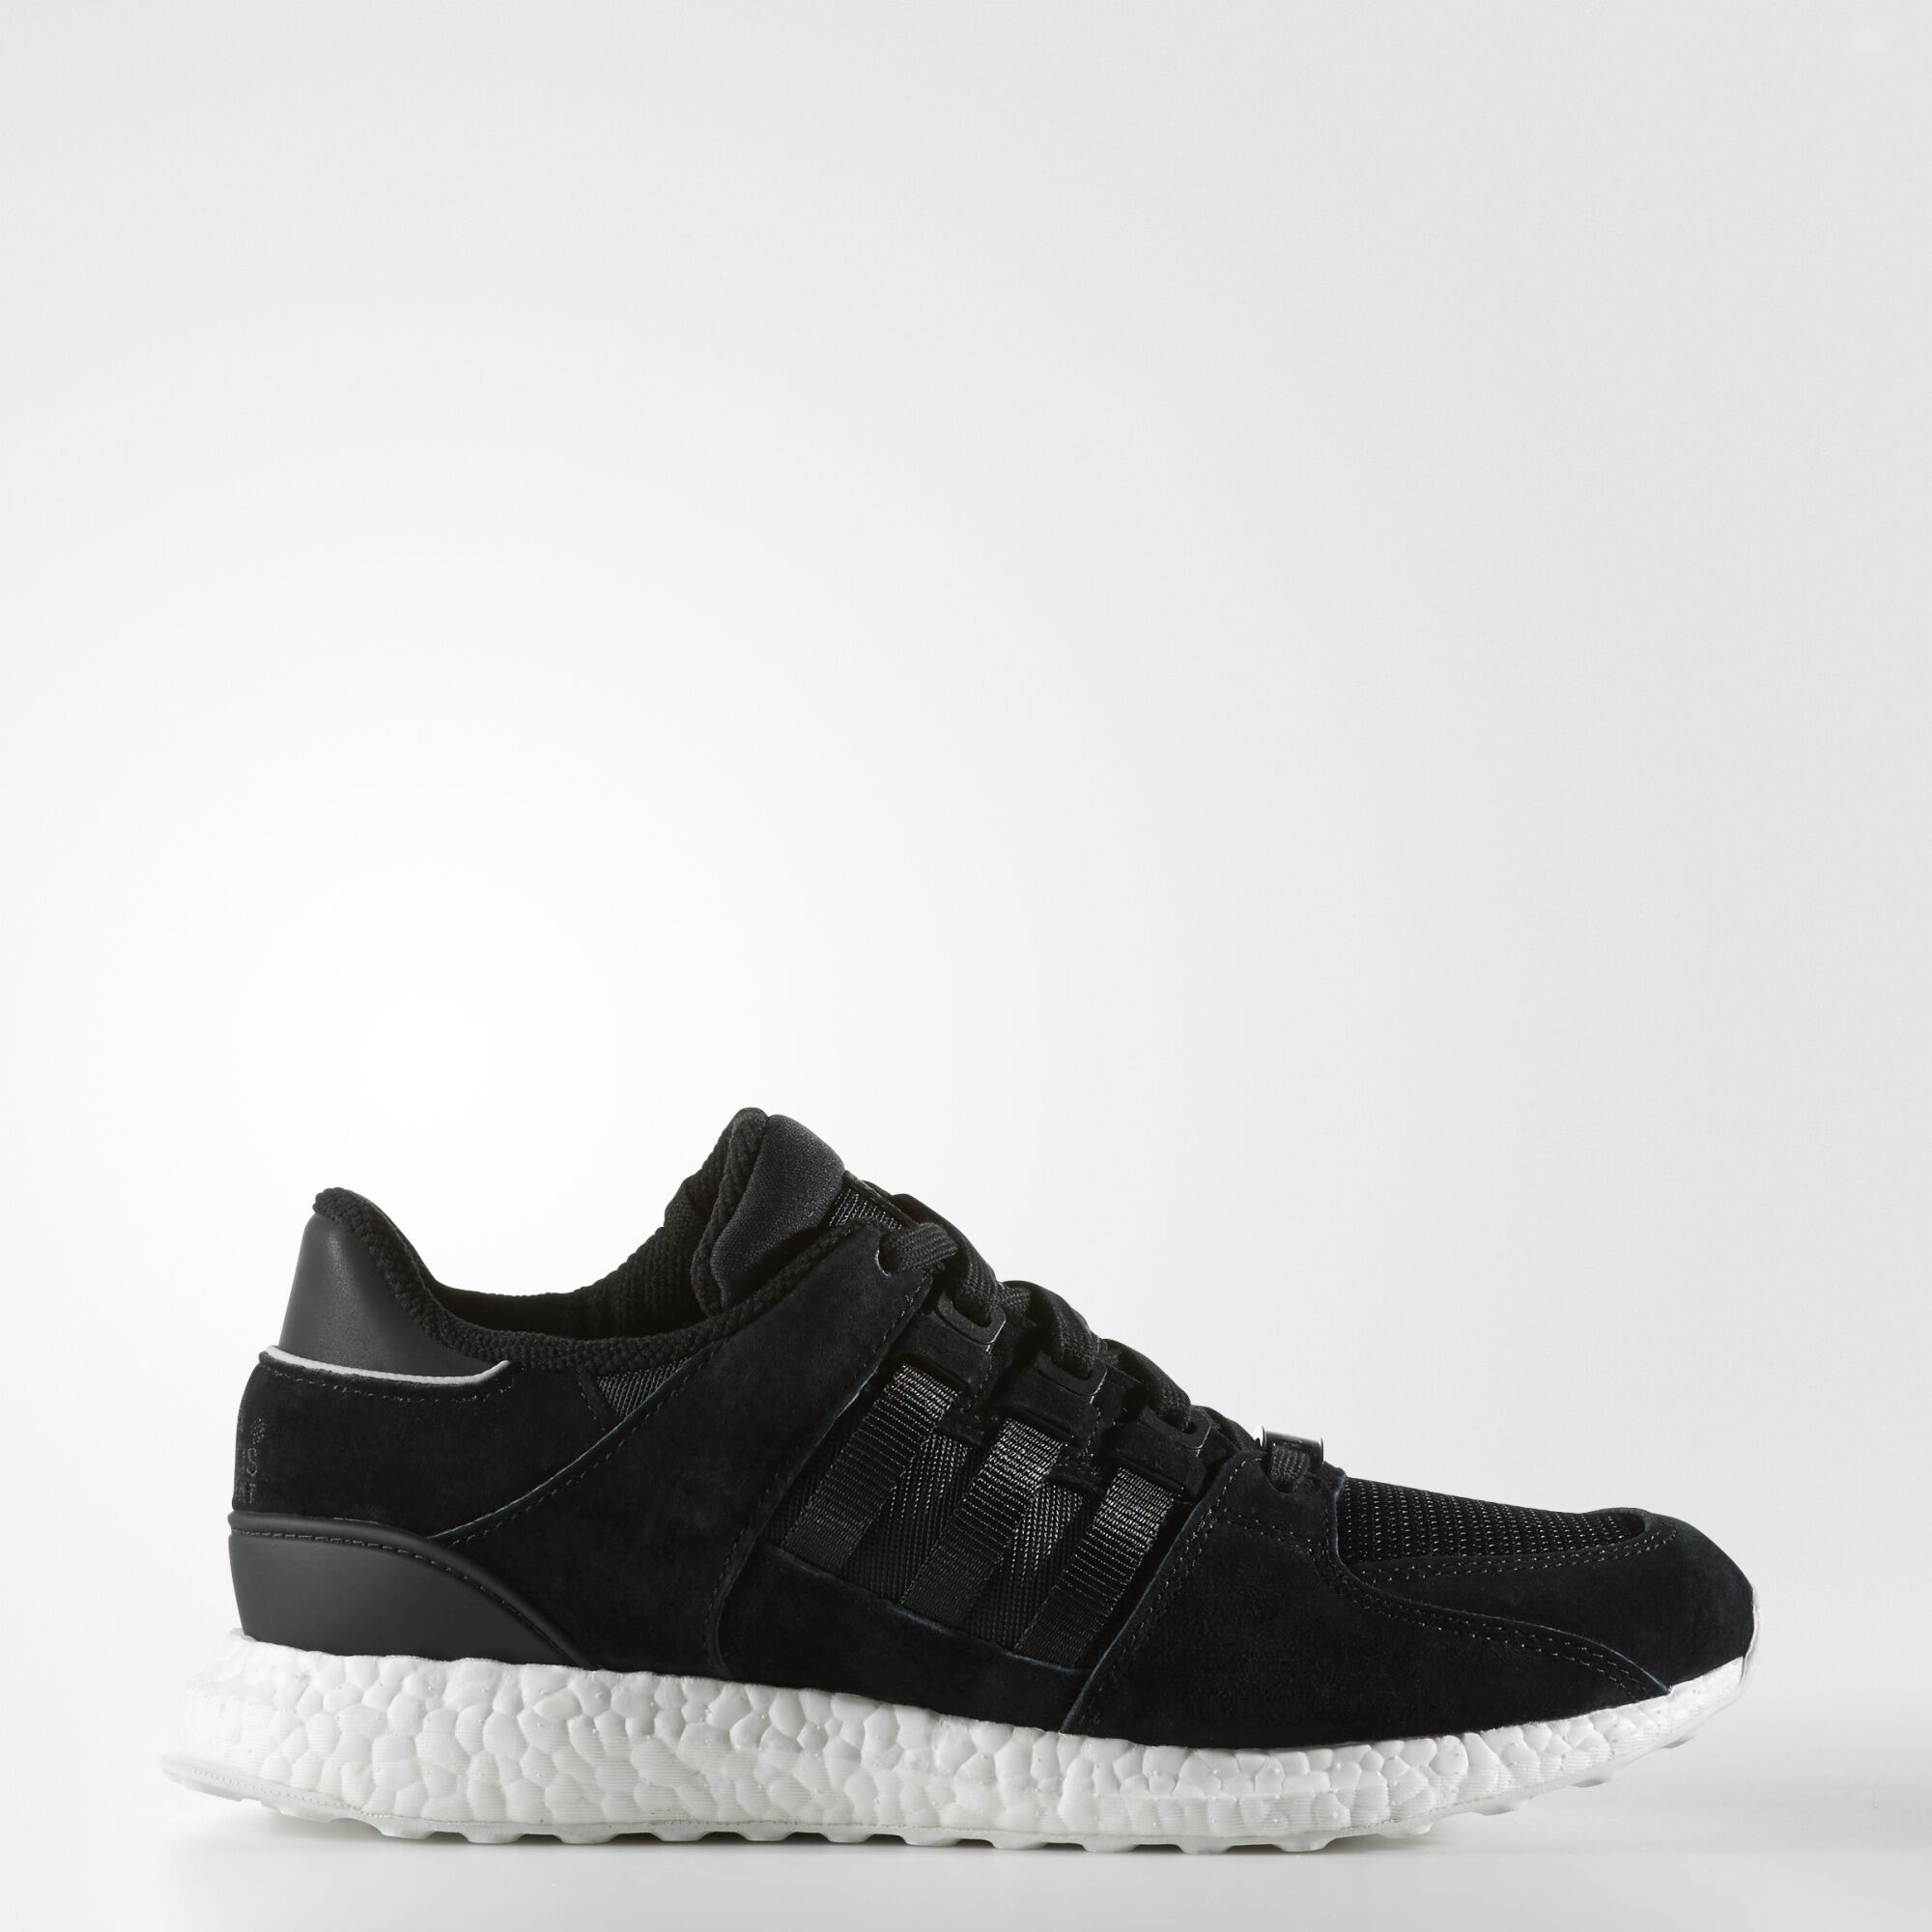 adidas originals official website